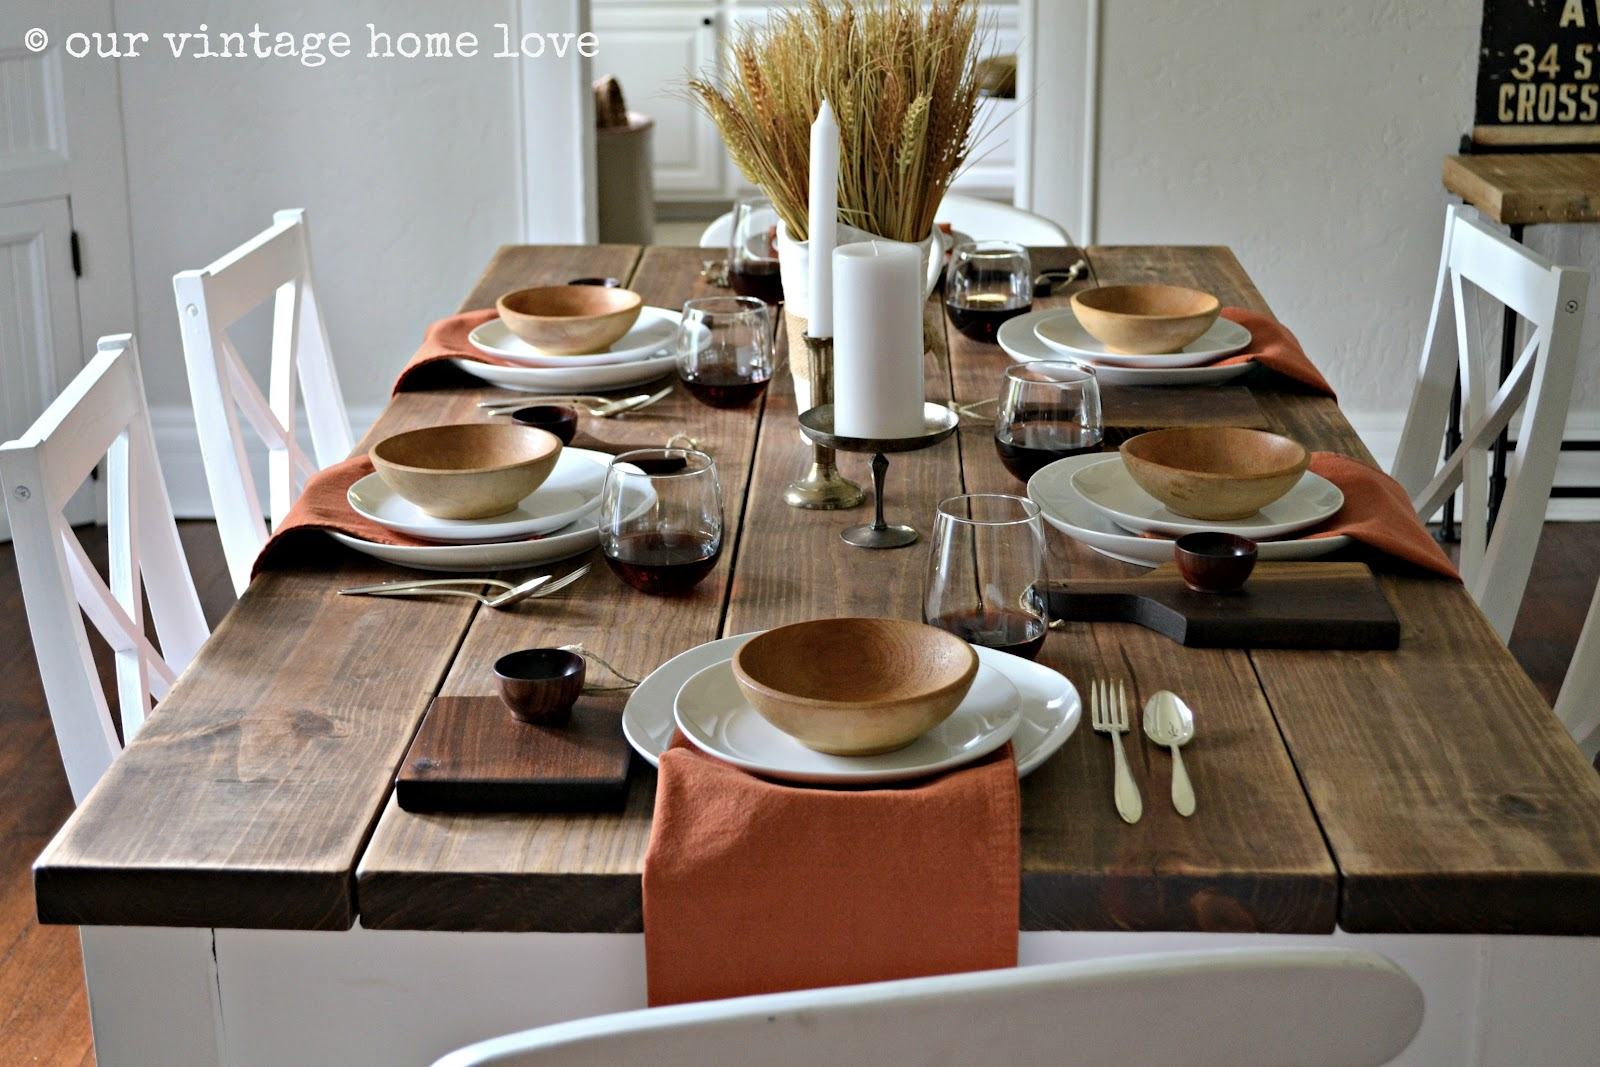 Autumn Table Decor and a Vintage Industrial Table & vintage home love: Autumn Table Decor and a Vintage Industrial Table